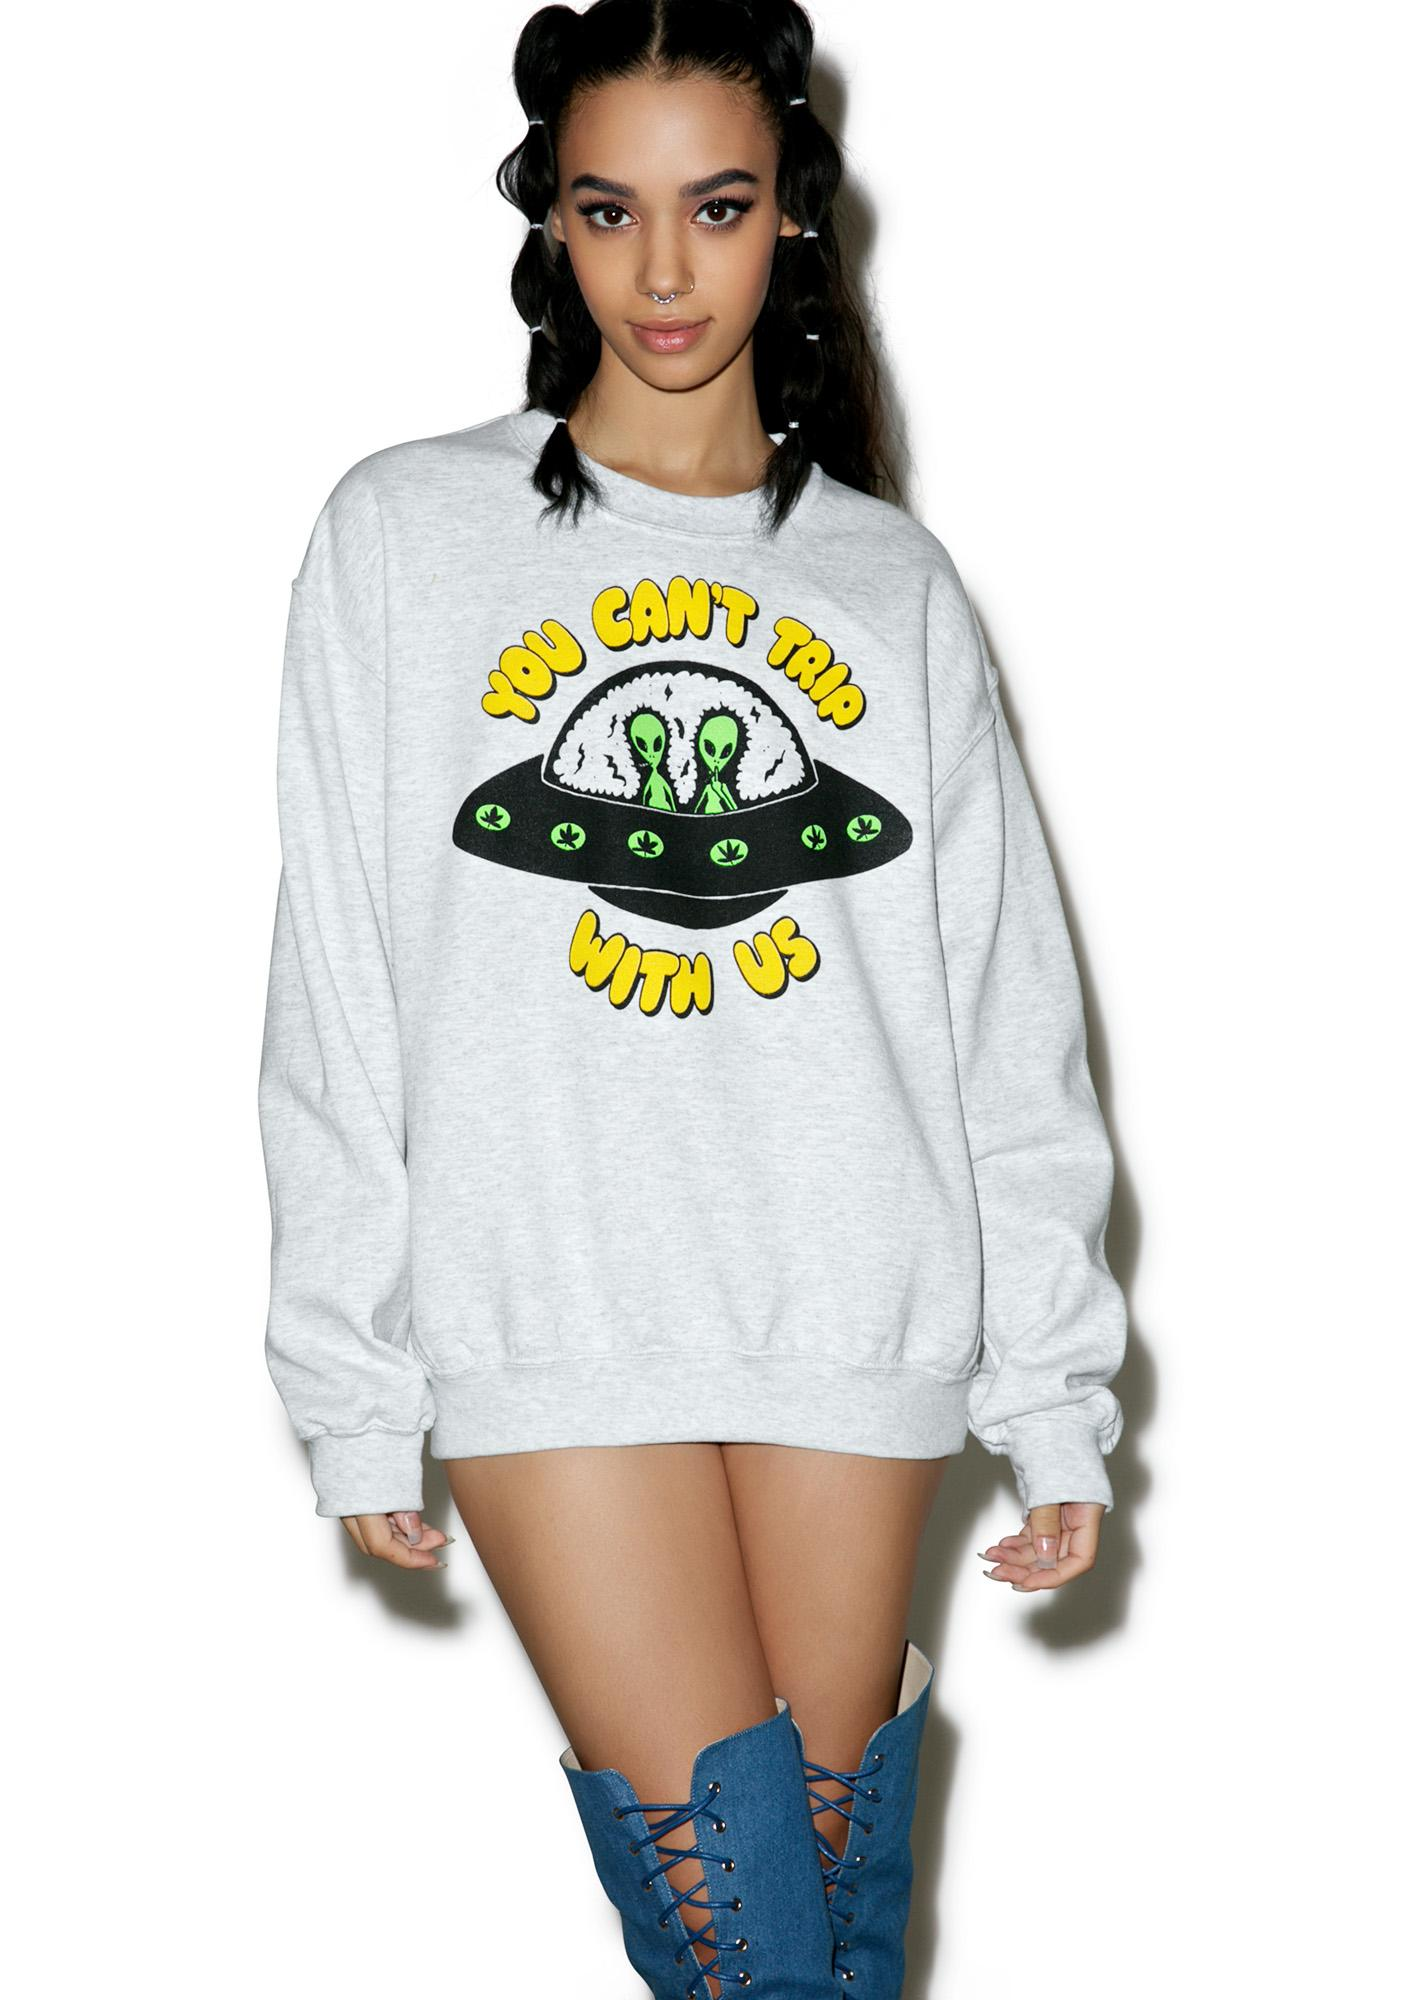 Burger And Friends You Can't Trip With Us Sweatshirt